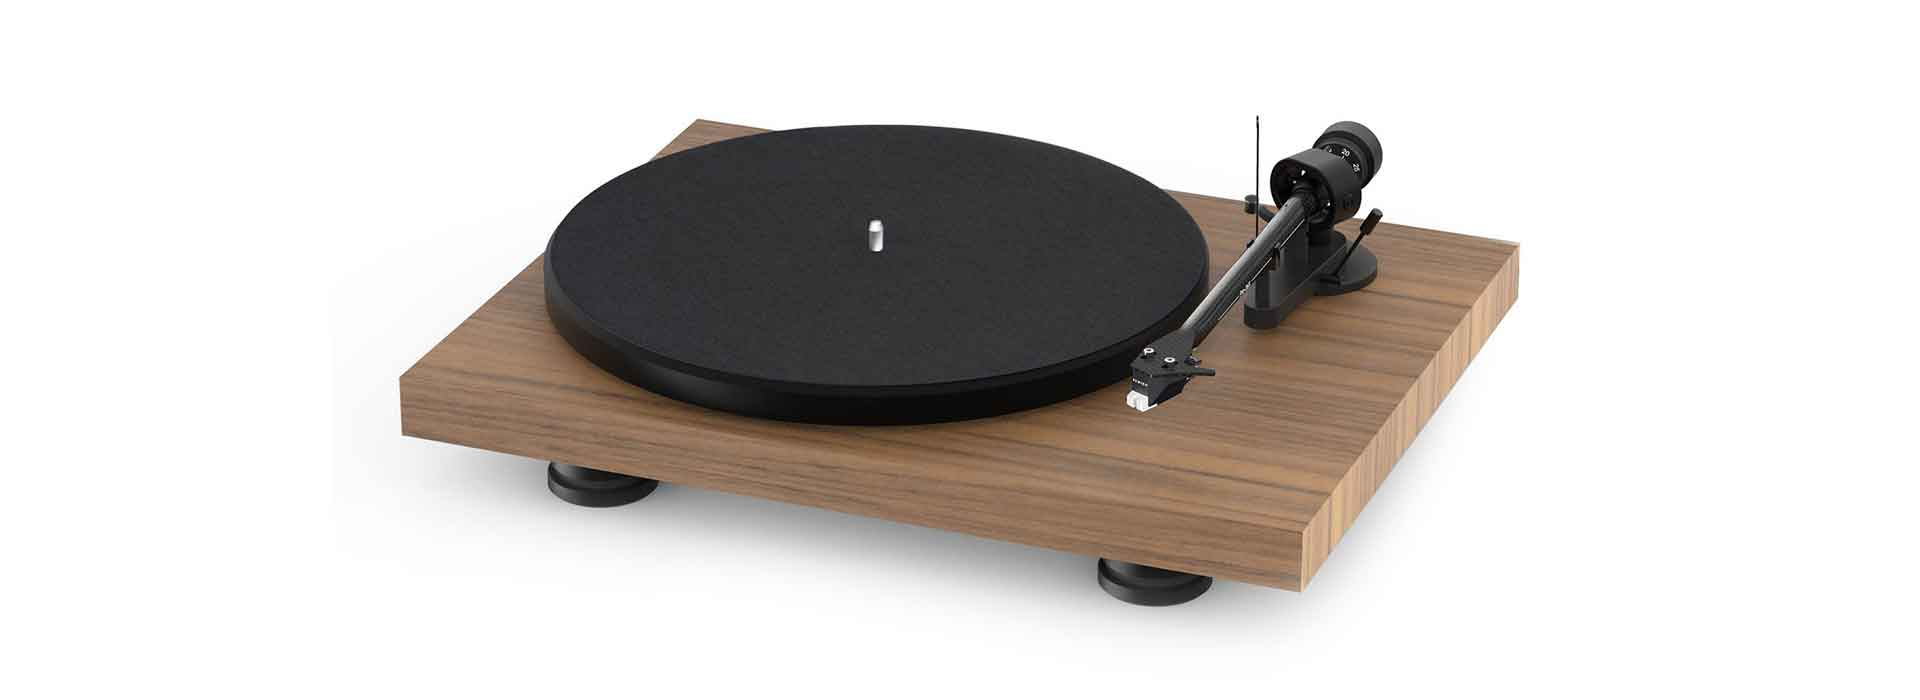 Pro-Ject Debut Carbon Evo - $499